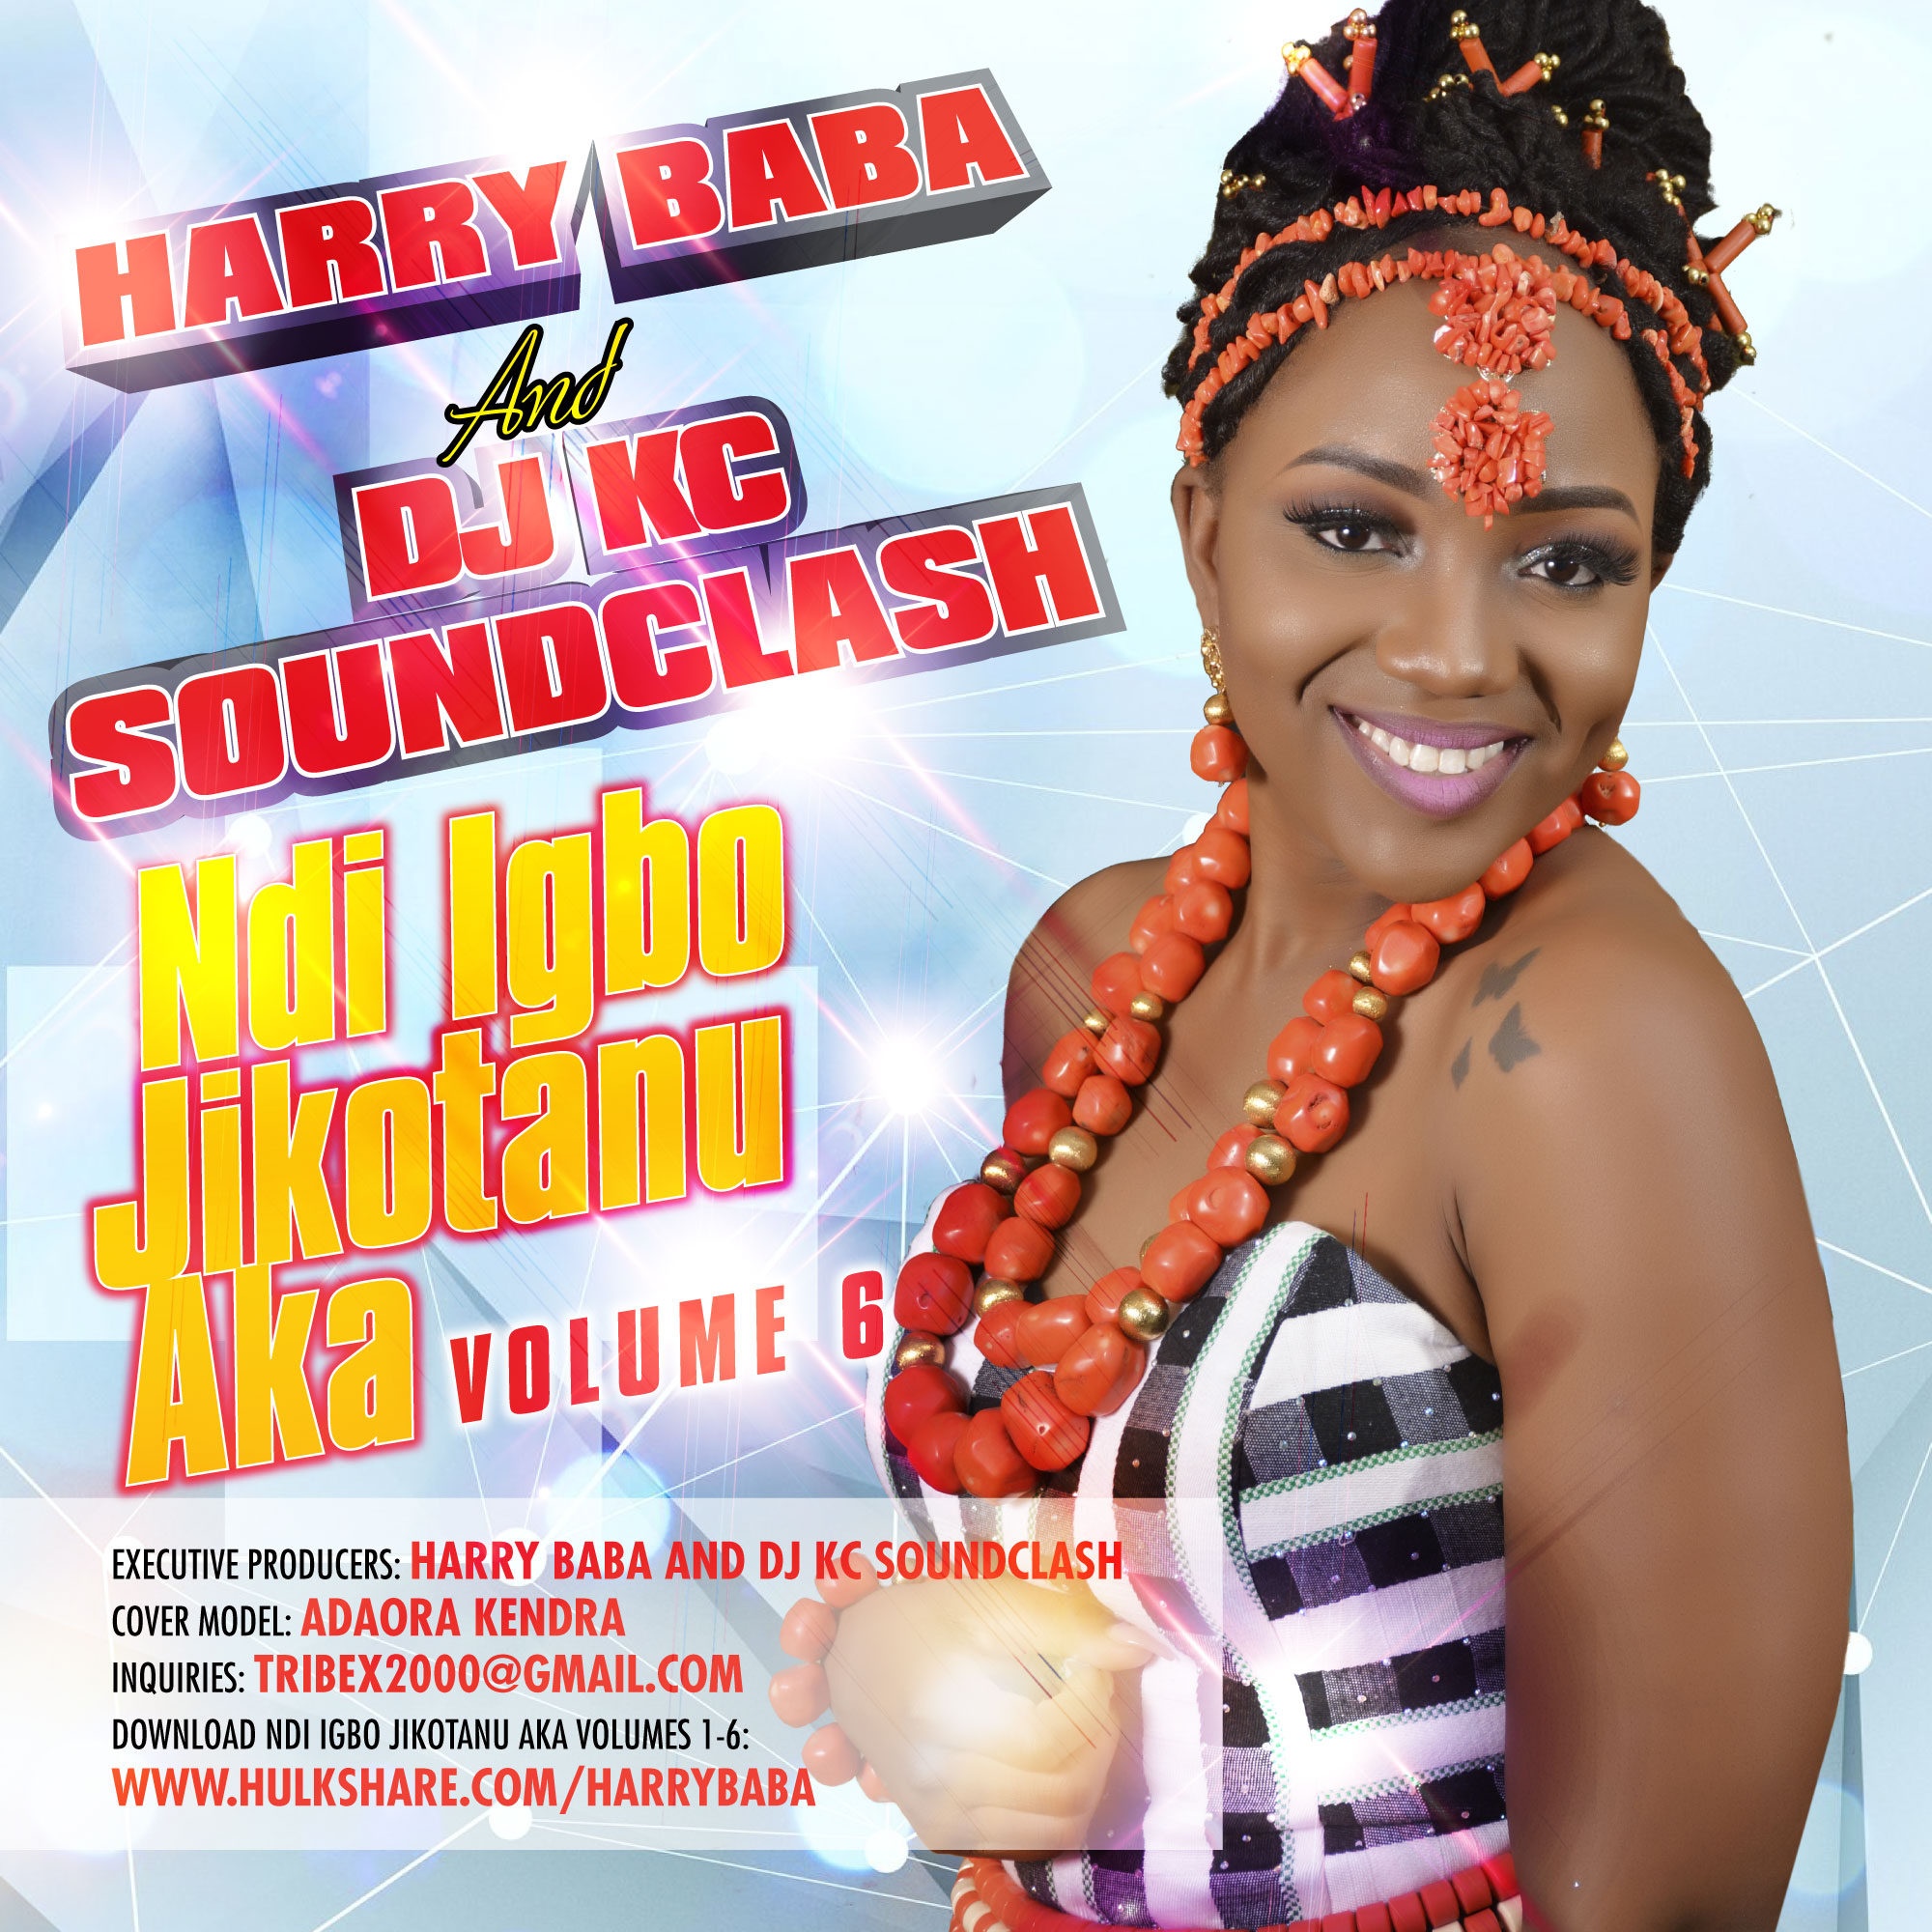 Harry Baba And Dj Kc Soundclash Present